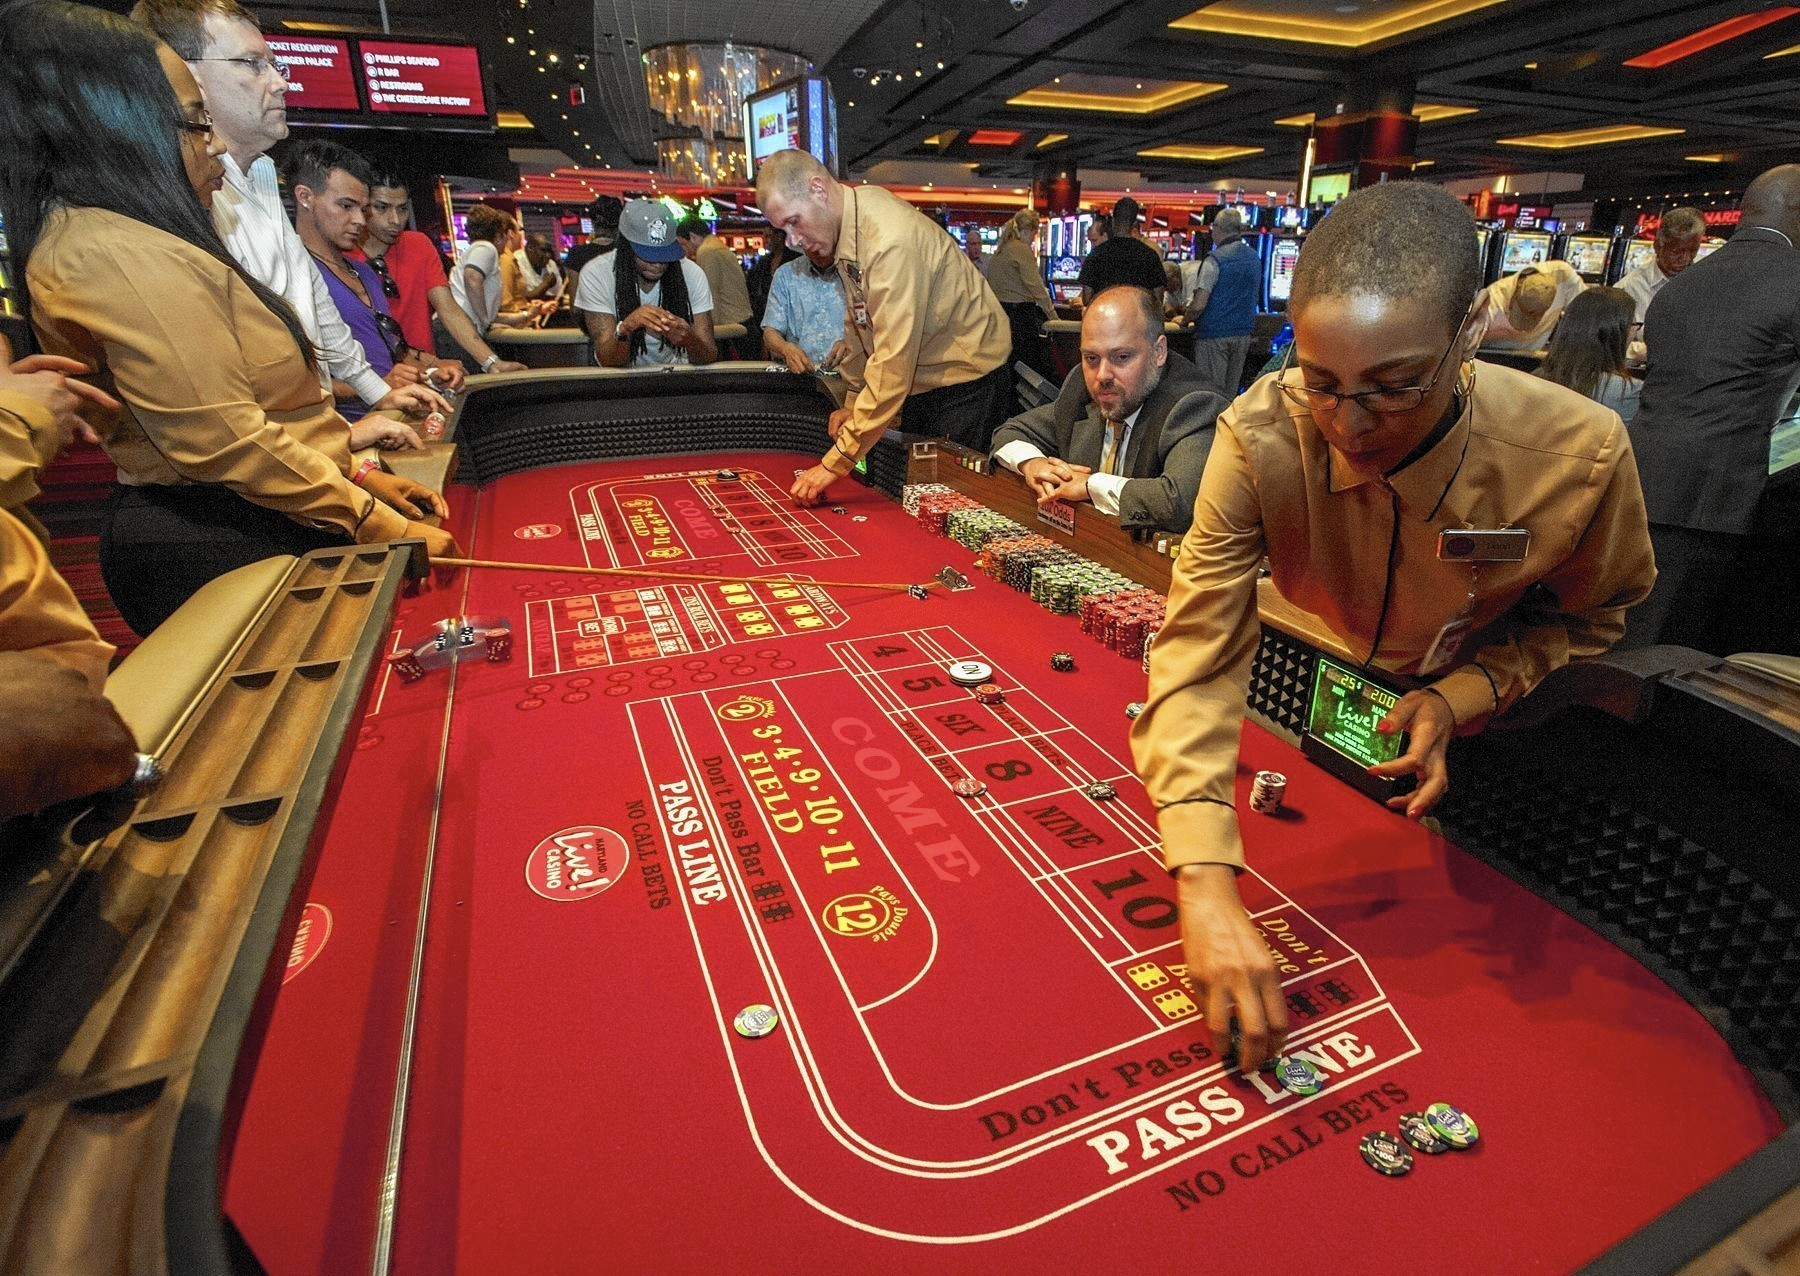 maryland live casino poker room maryland live casino plans more growth capital gazette 20661